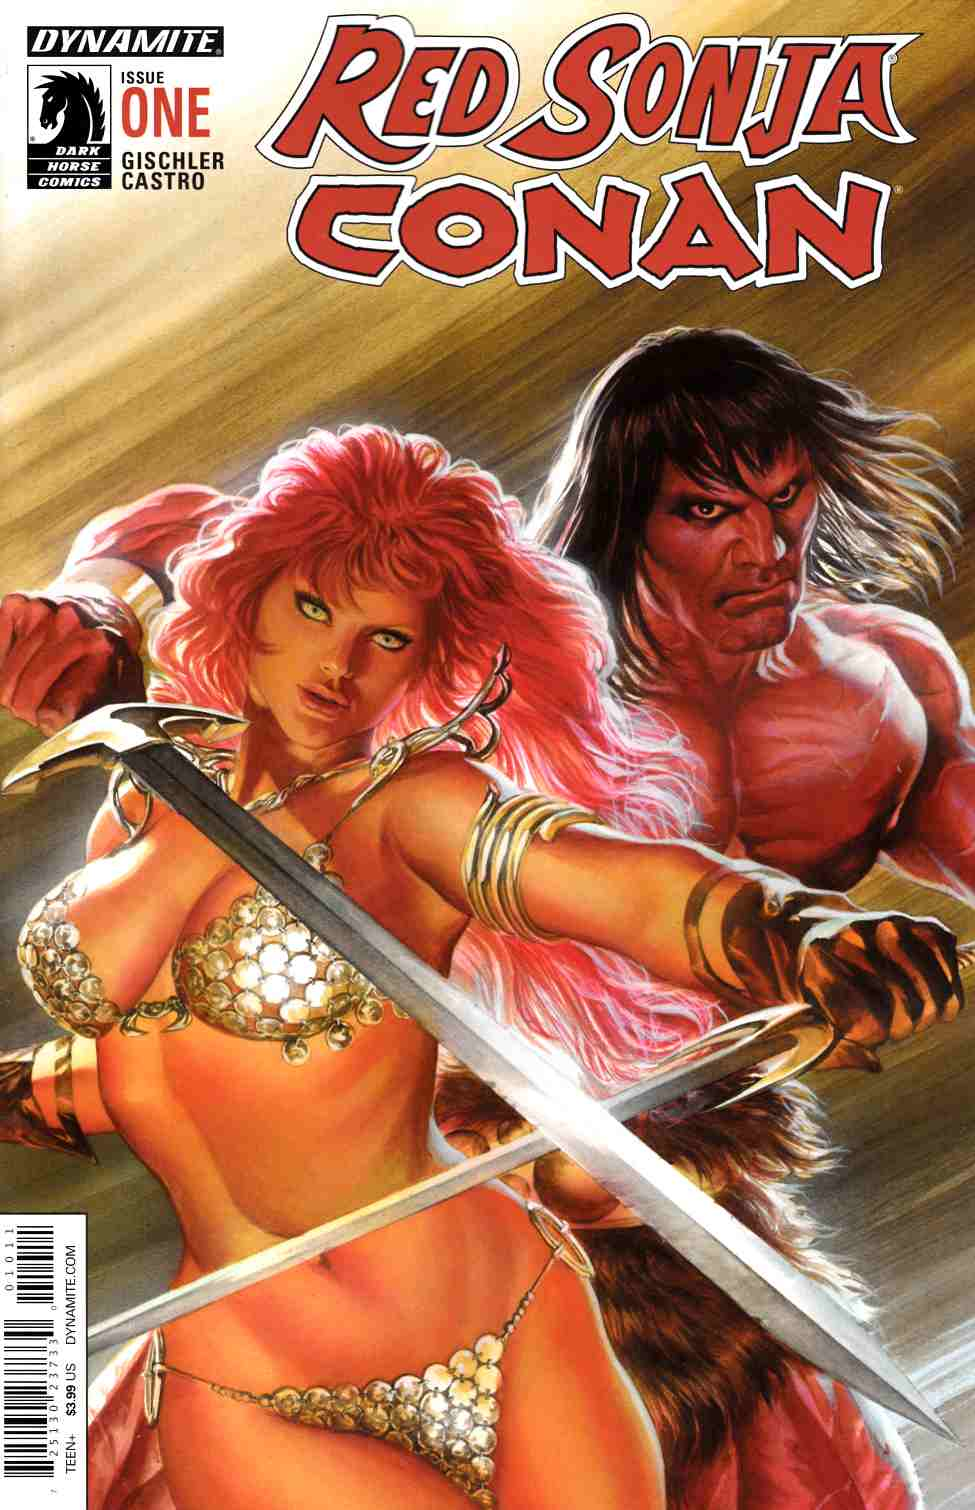 Red Sonja Conan #1 Cover A- Ross [Dynamite Comic] THUMBNAIL